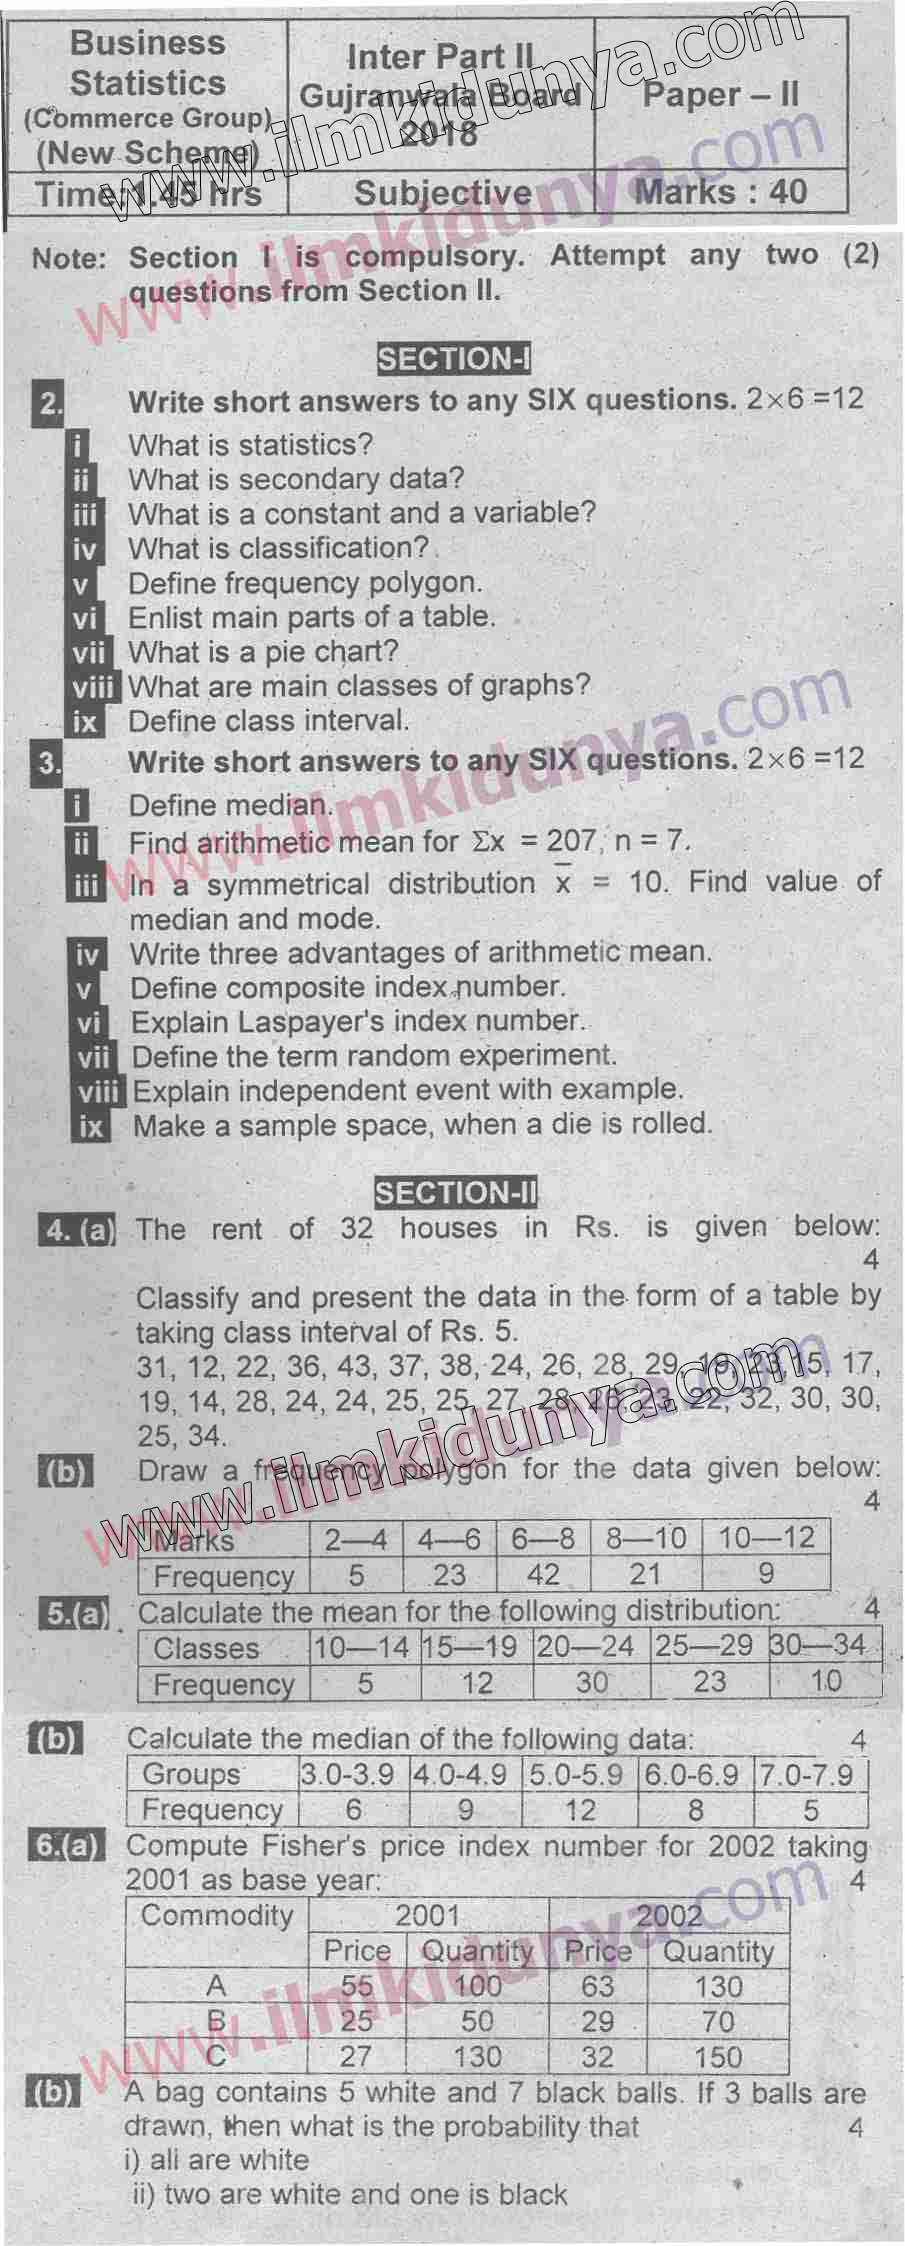 Past Papers 2018 Gujranwala Board ICom Part 2 Business